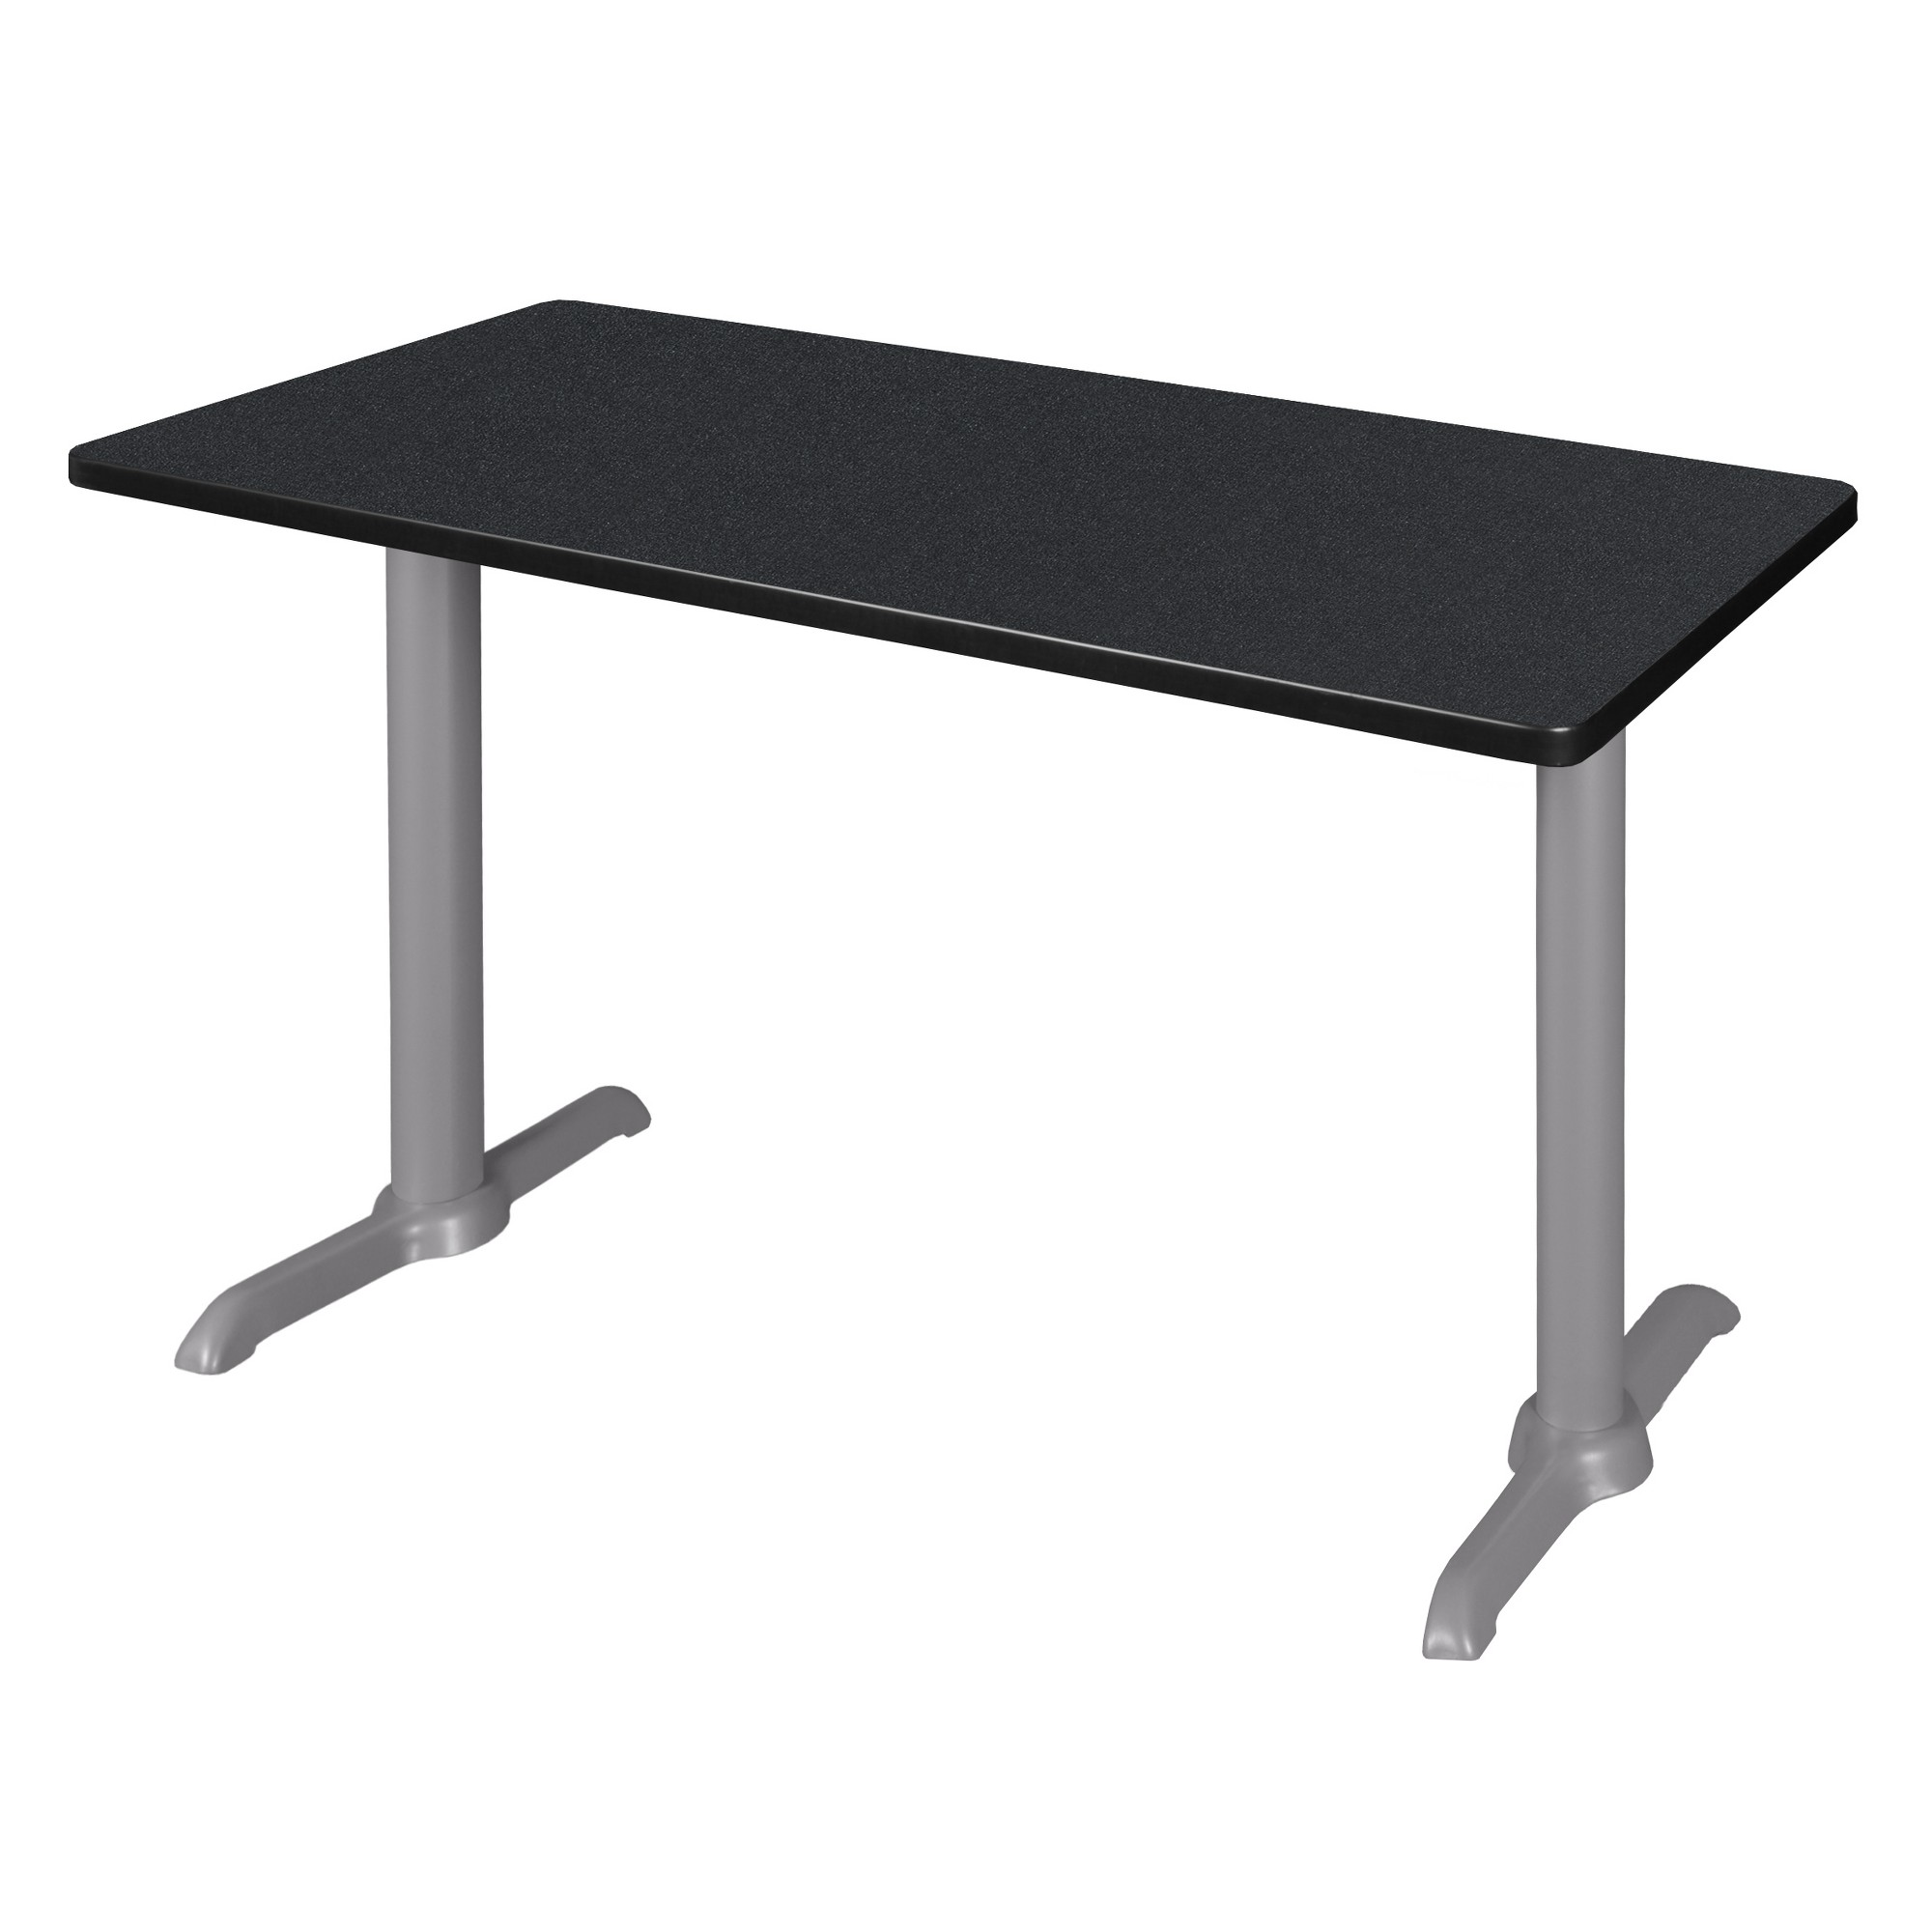 42 Via Training Table Carbon/Gray (Black/Gray) - Regency